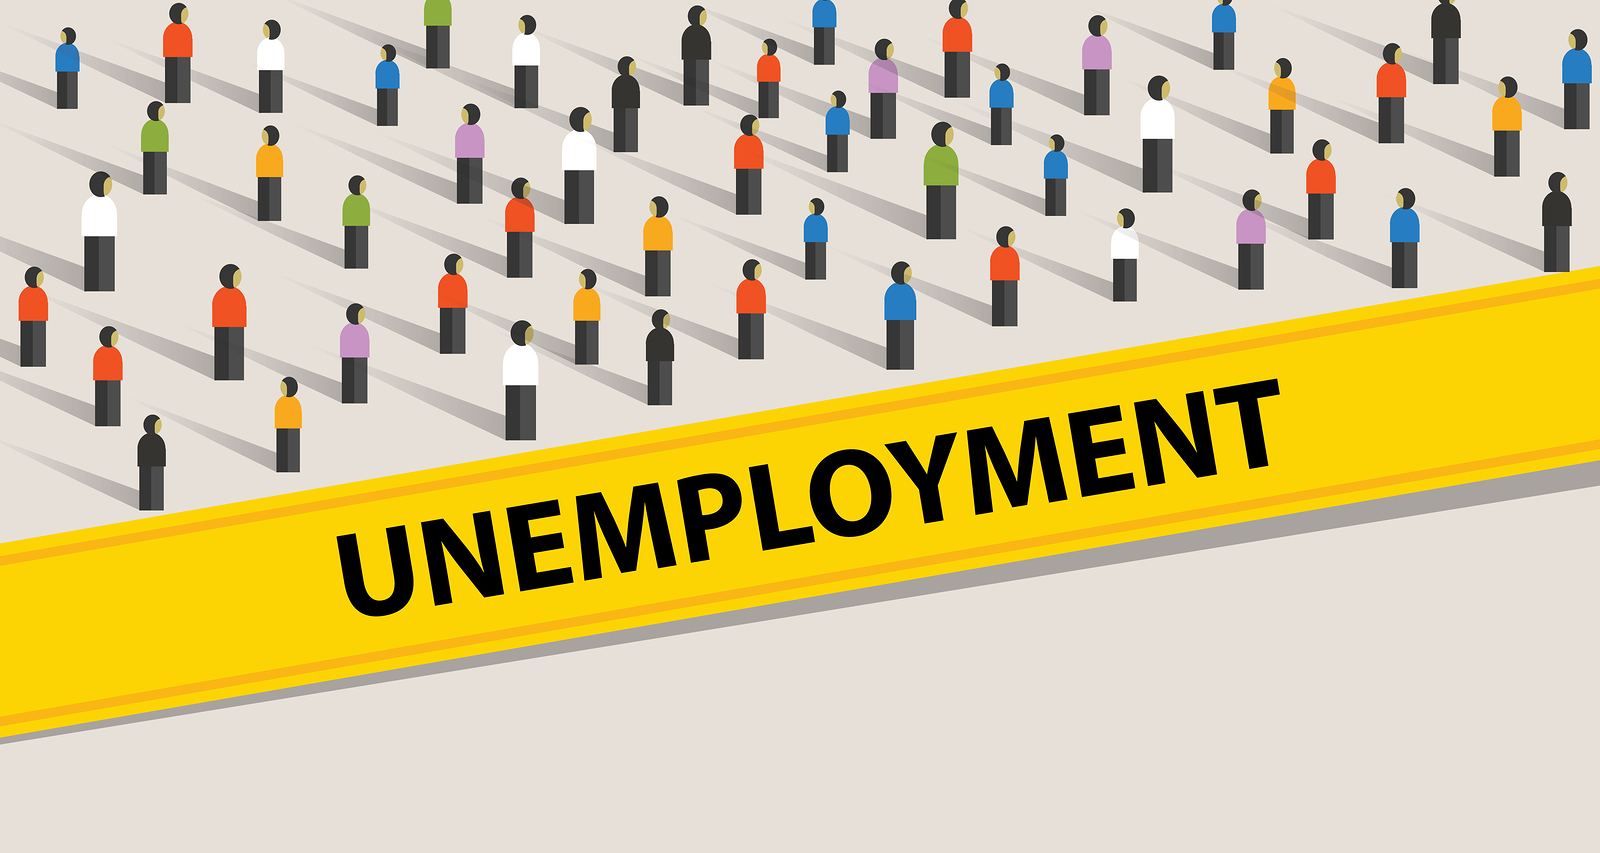 Unemployment rate decreases to 7.2% in San Diego County